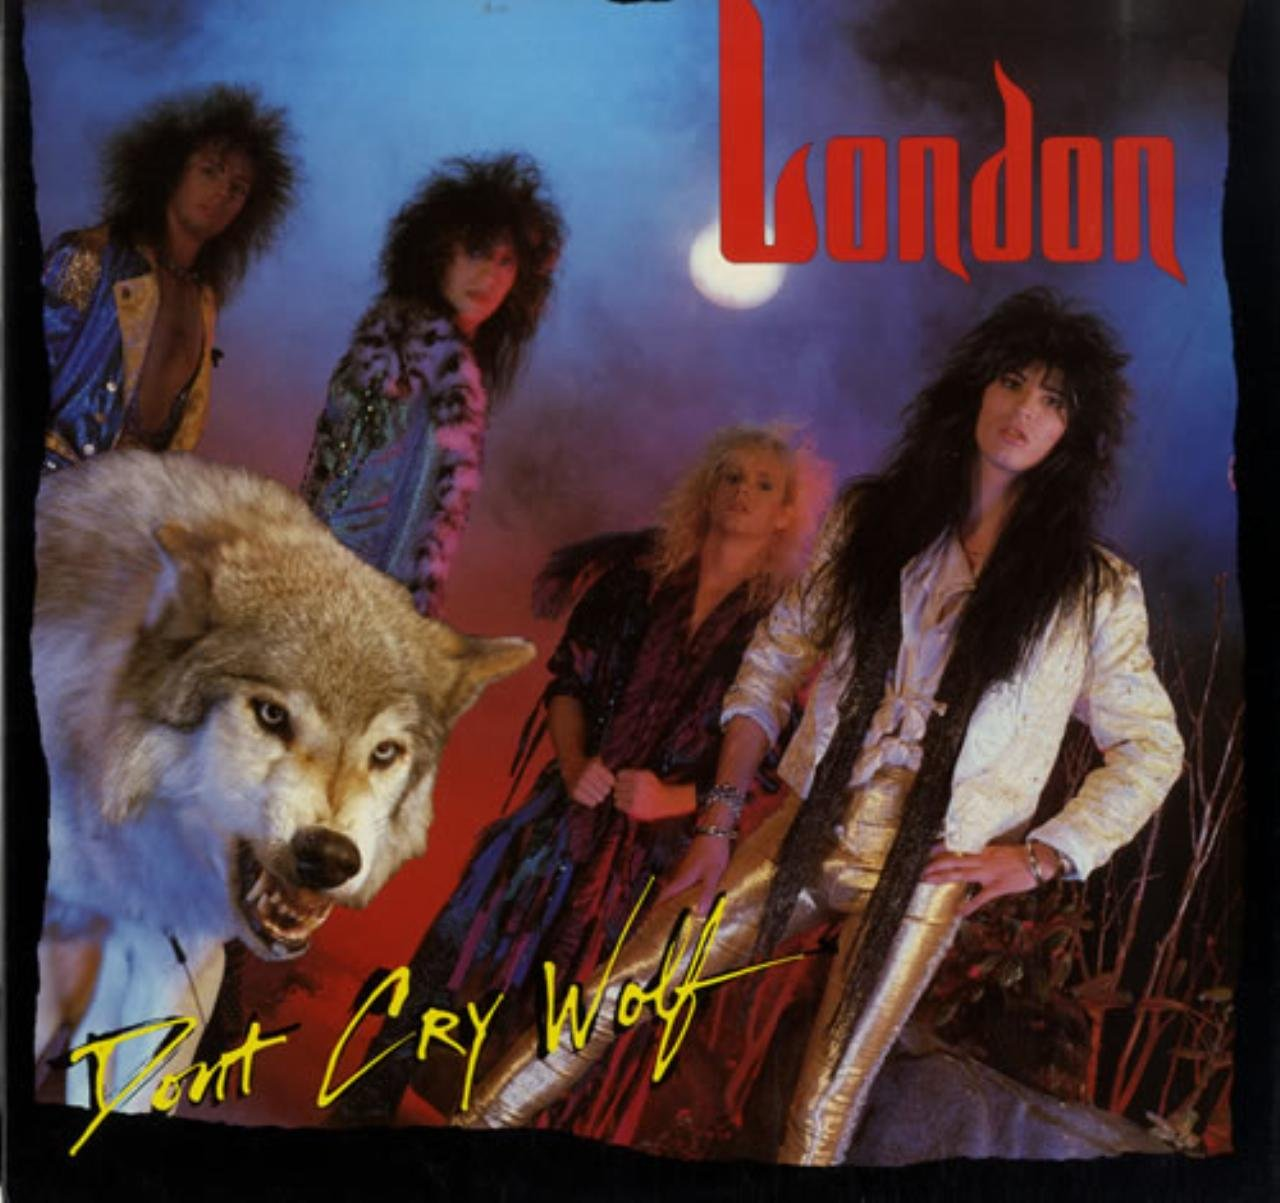 London don't cry wolf